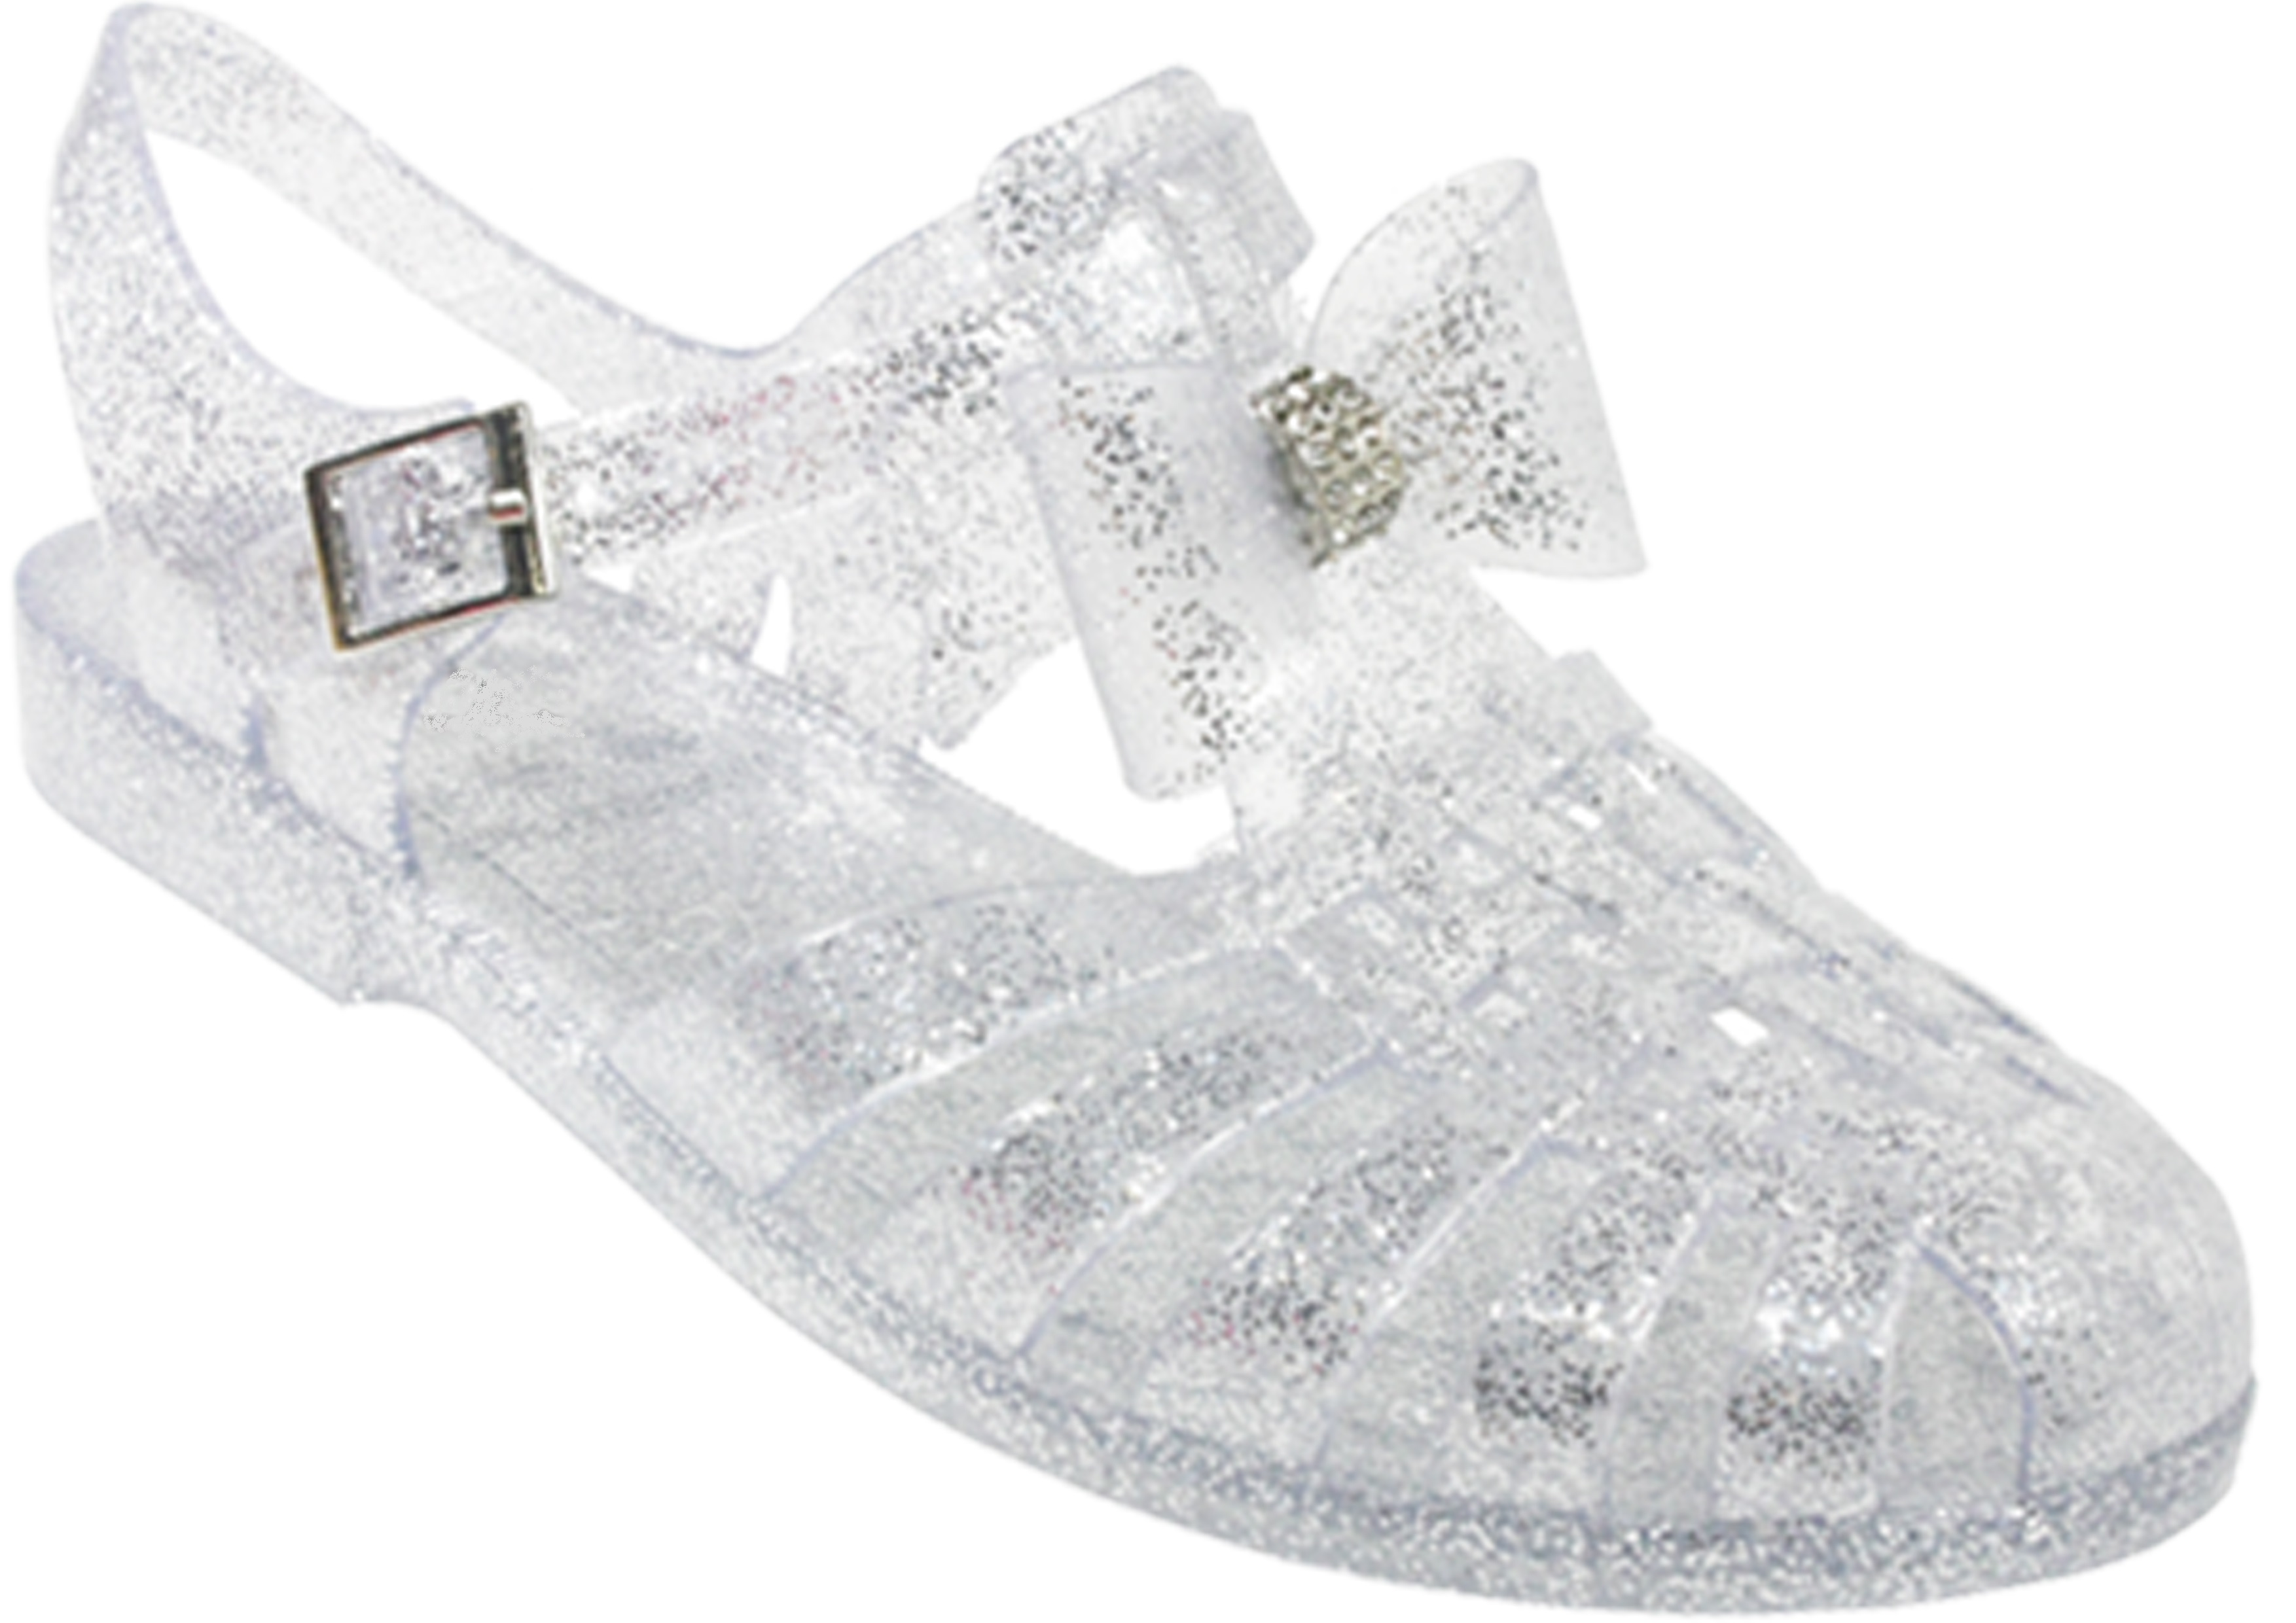 Black jelly sandals with bow - Childrens Kids Girls Jelly Bow Diamante Retro Jellies